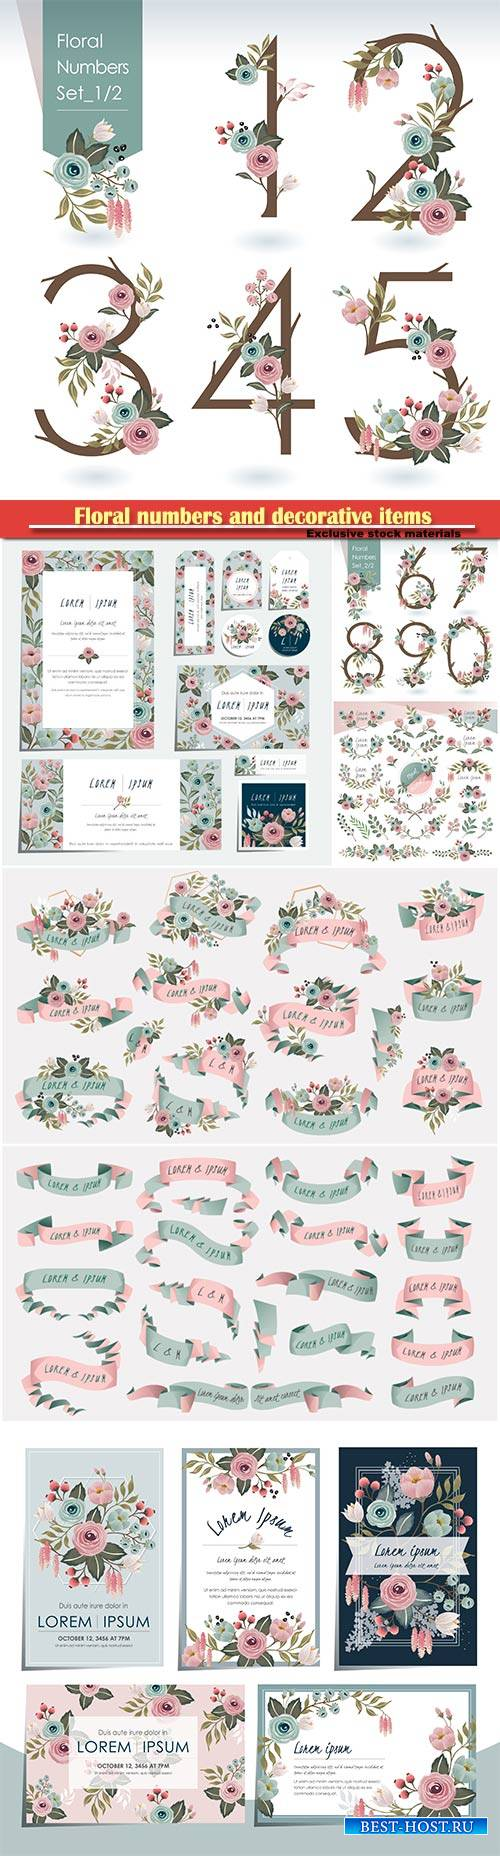 Floral numbers and decorative items for creativity